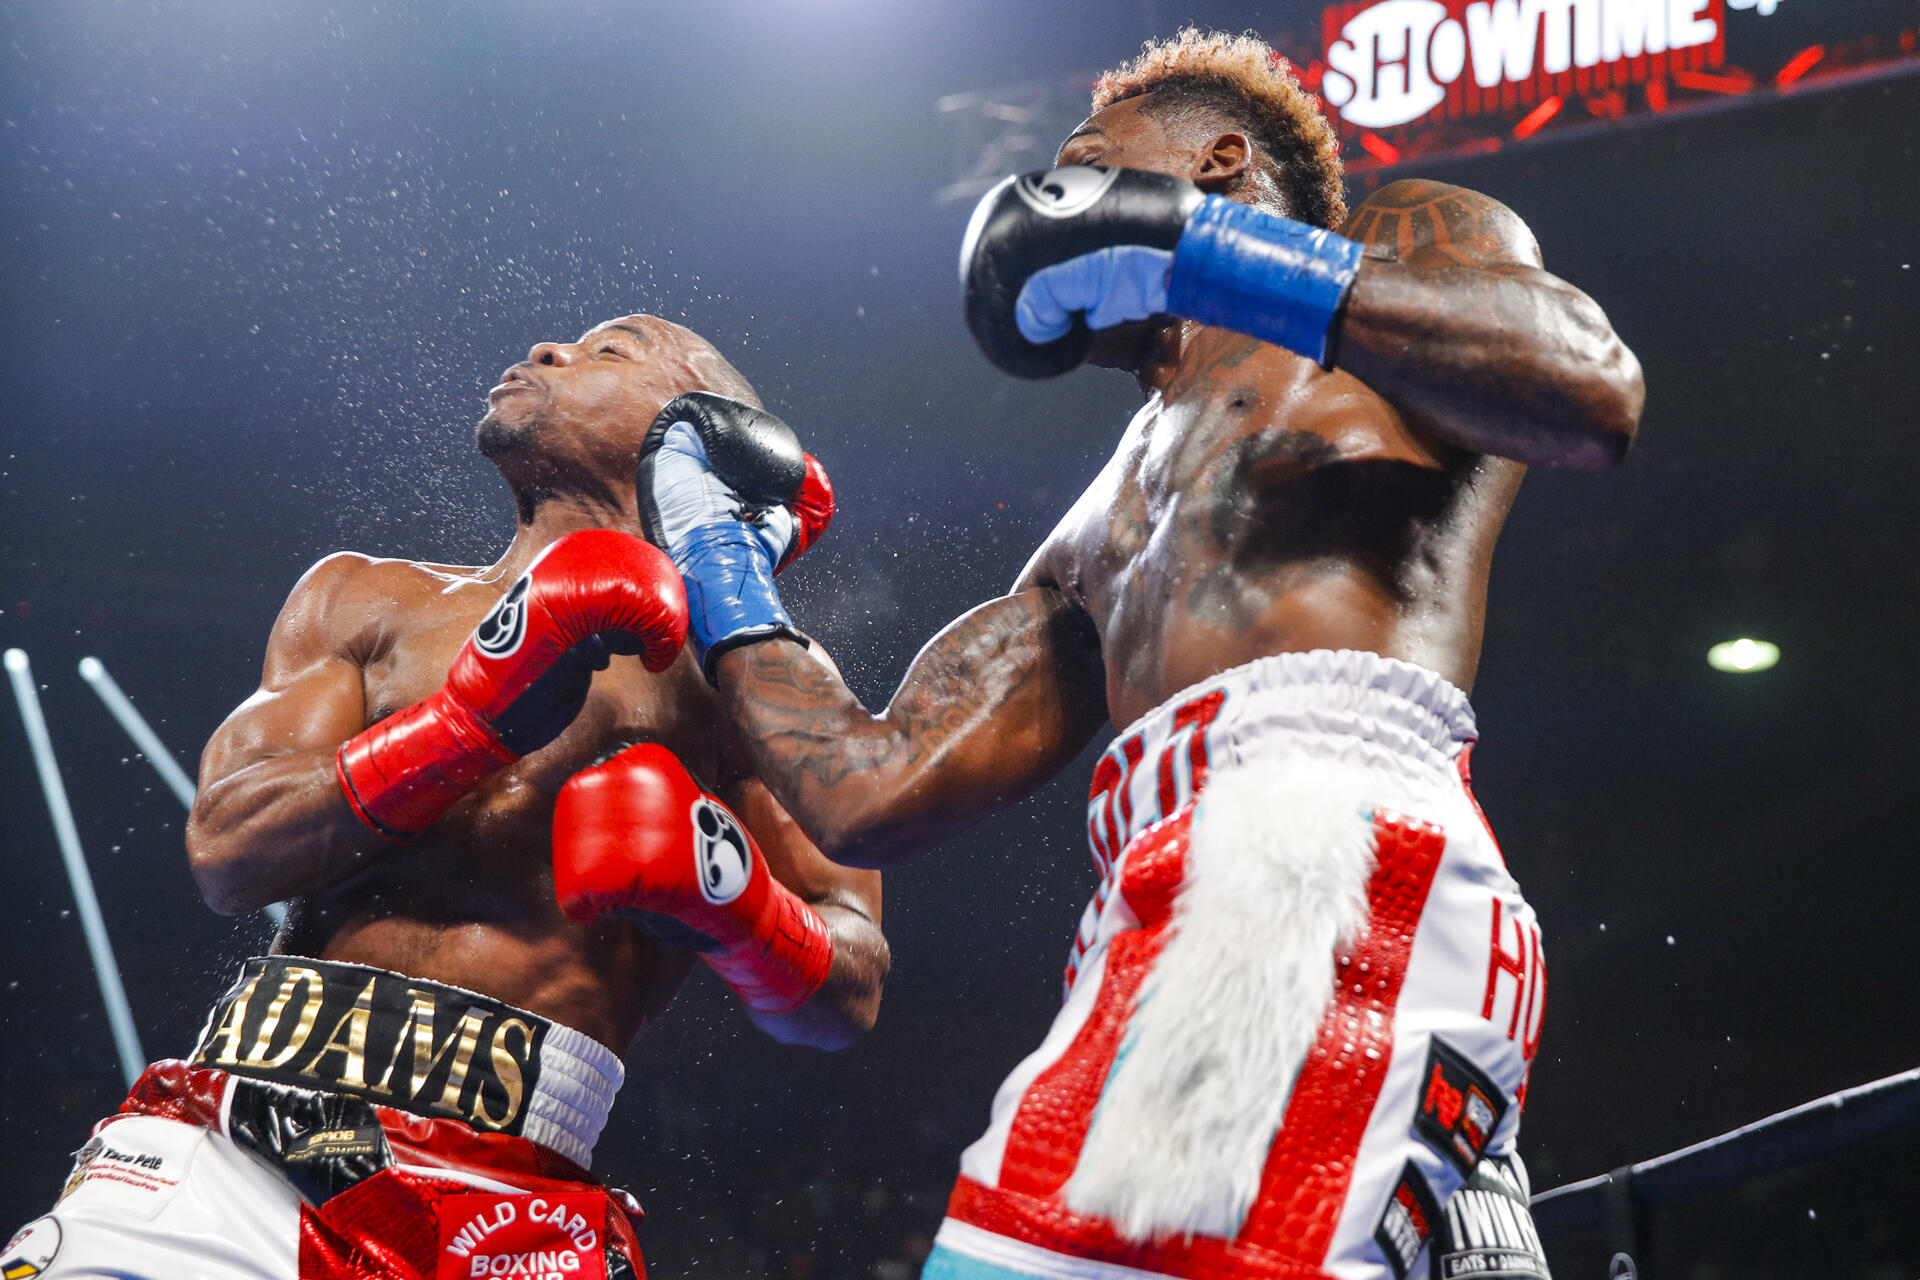 Jermall Charlo Brandon Adams4 Esther Lin Showtime - The Travelin' Man goes to Charlo-Adams: Part Two